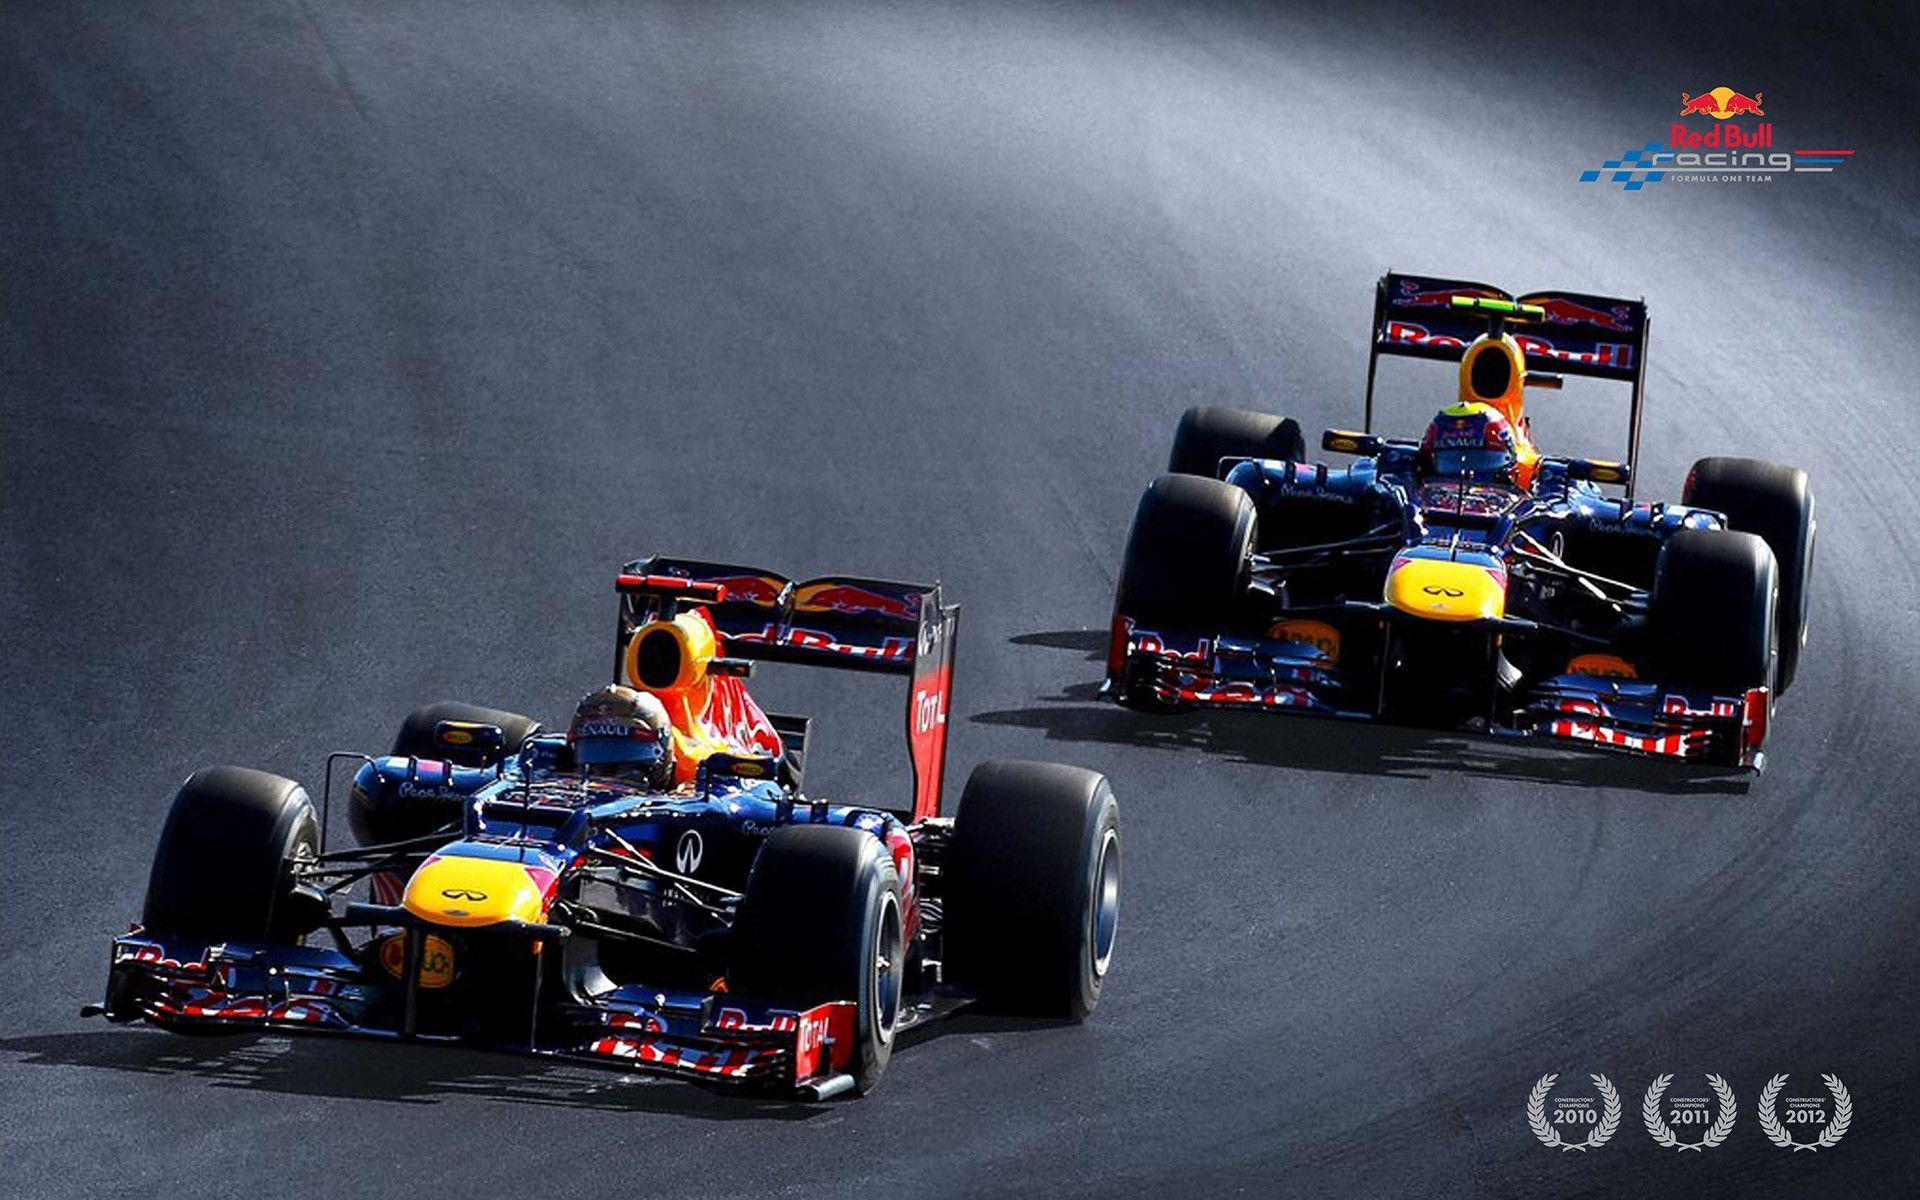 Red Bull F1 Wallpaper For Android ZNg (With images) Red